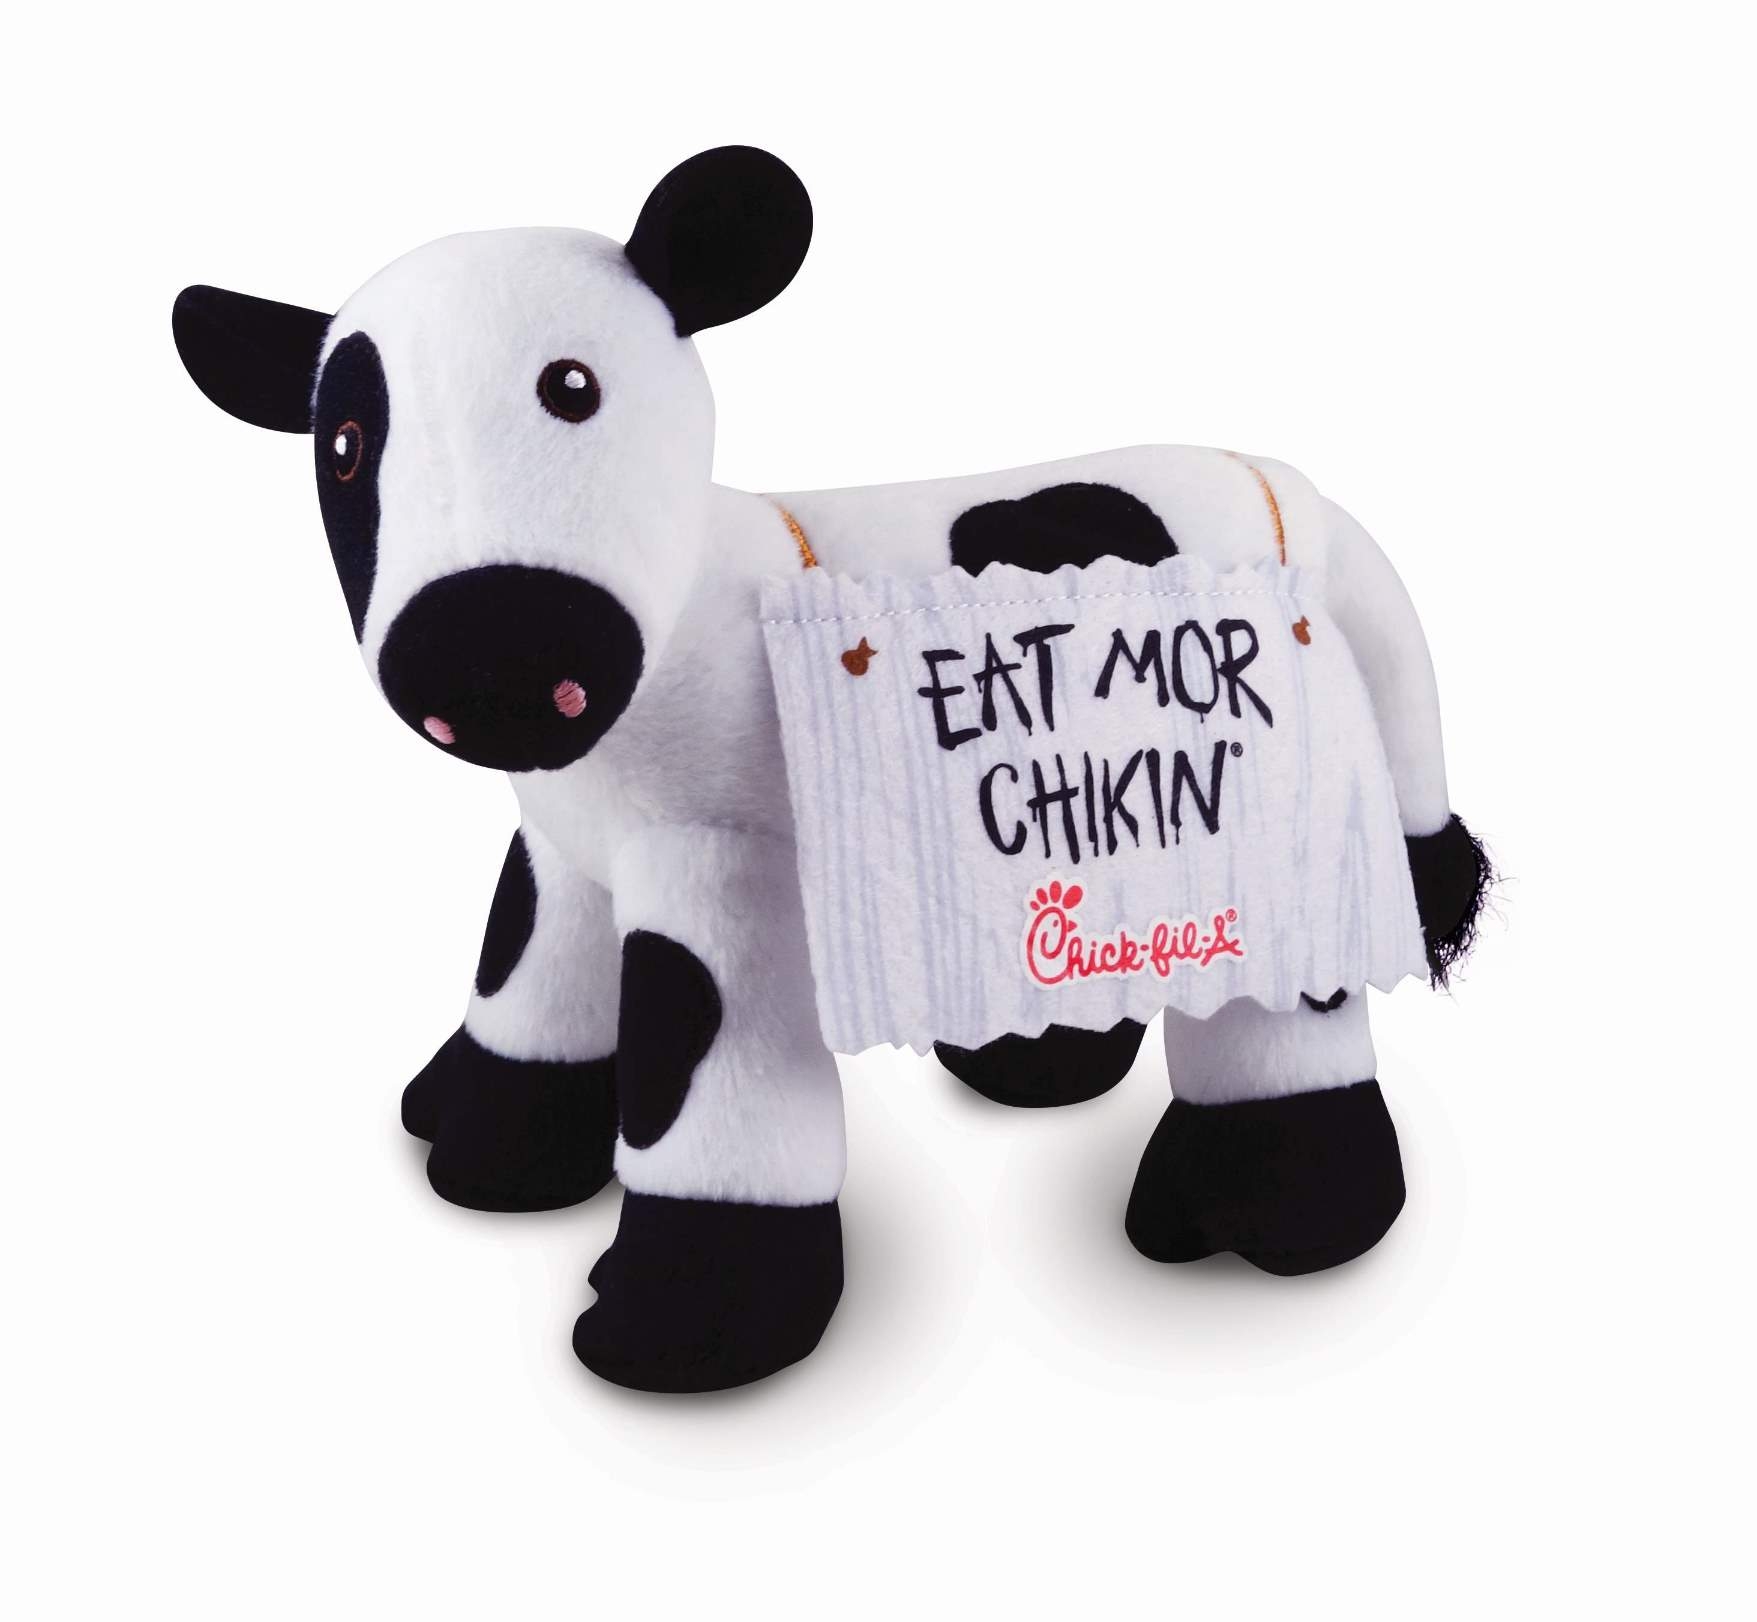 2015 – 20th Anniversary of Cow Campaign